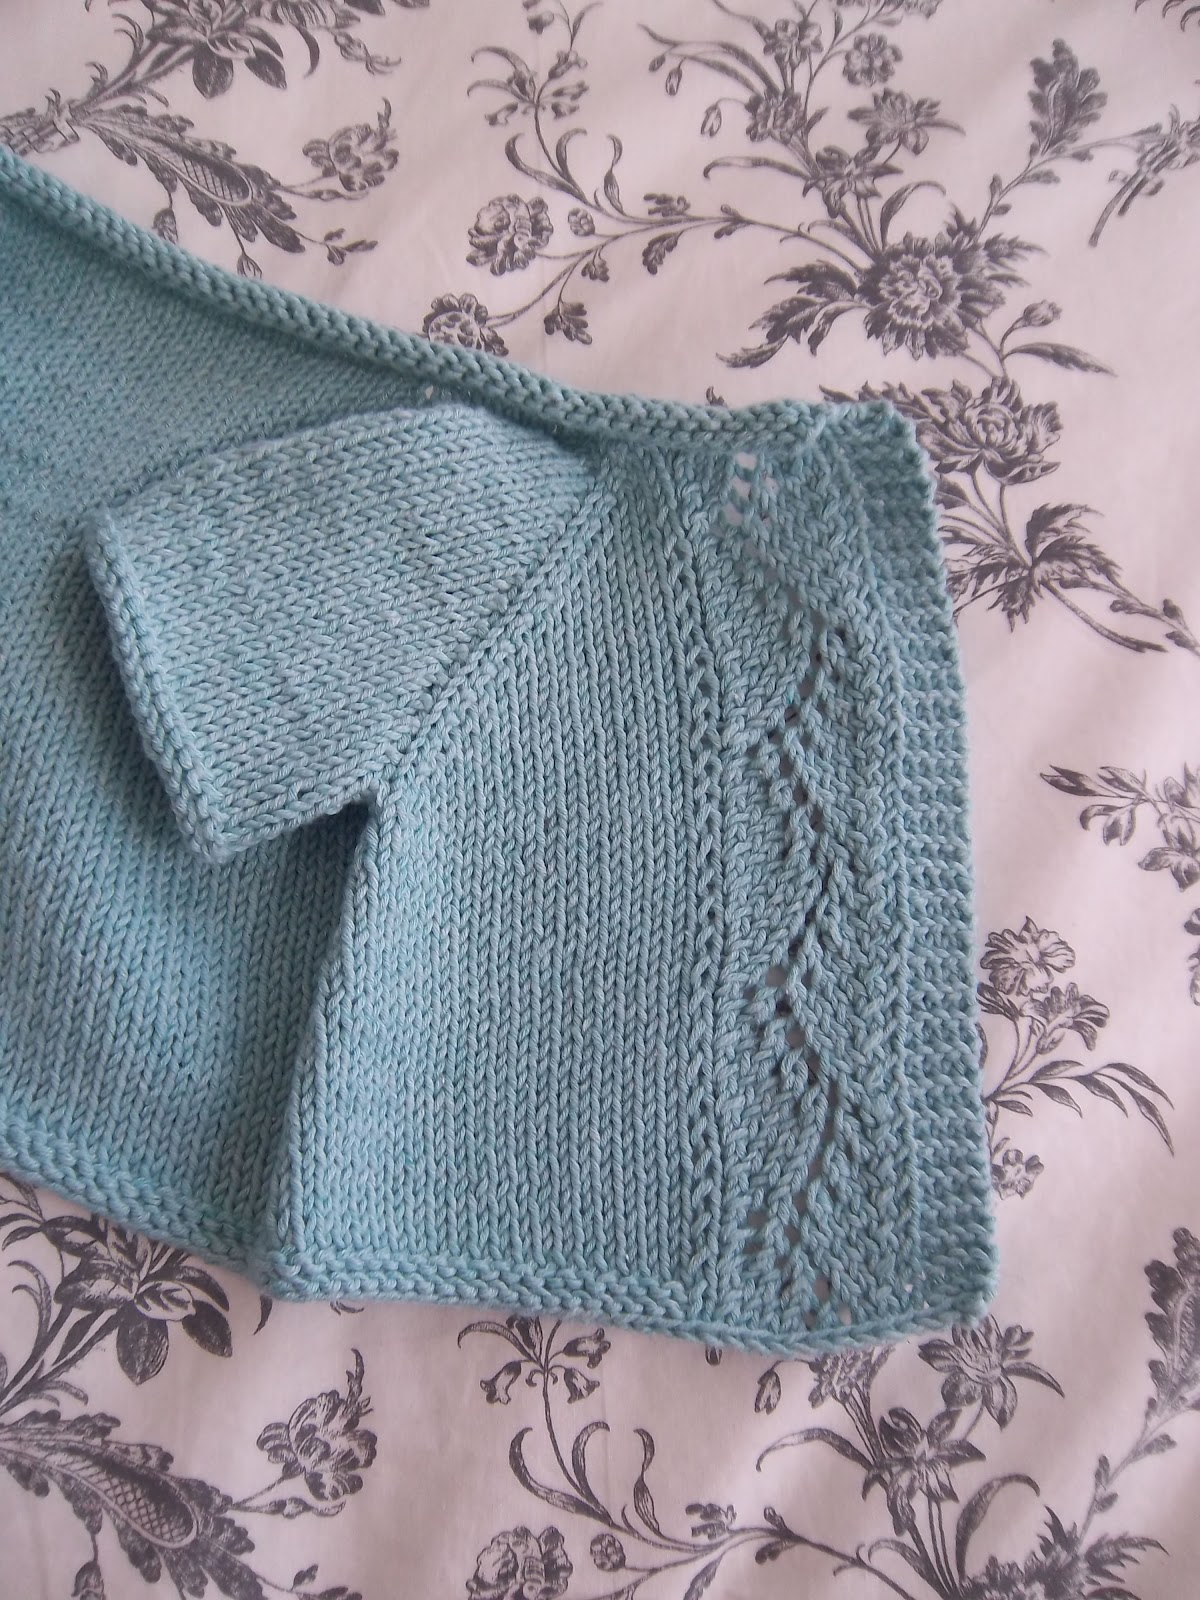 Knitting Pattern Baby Cardigan Newborn : jadore knitting: Vine Lace Cardigan.